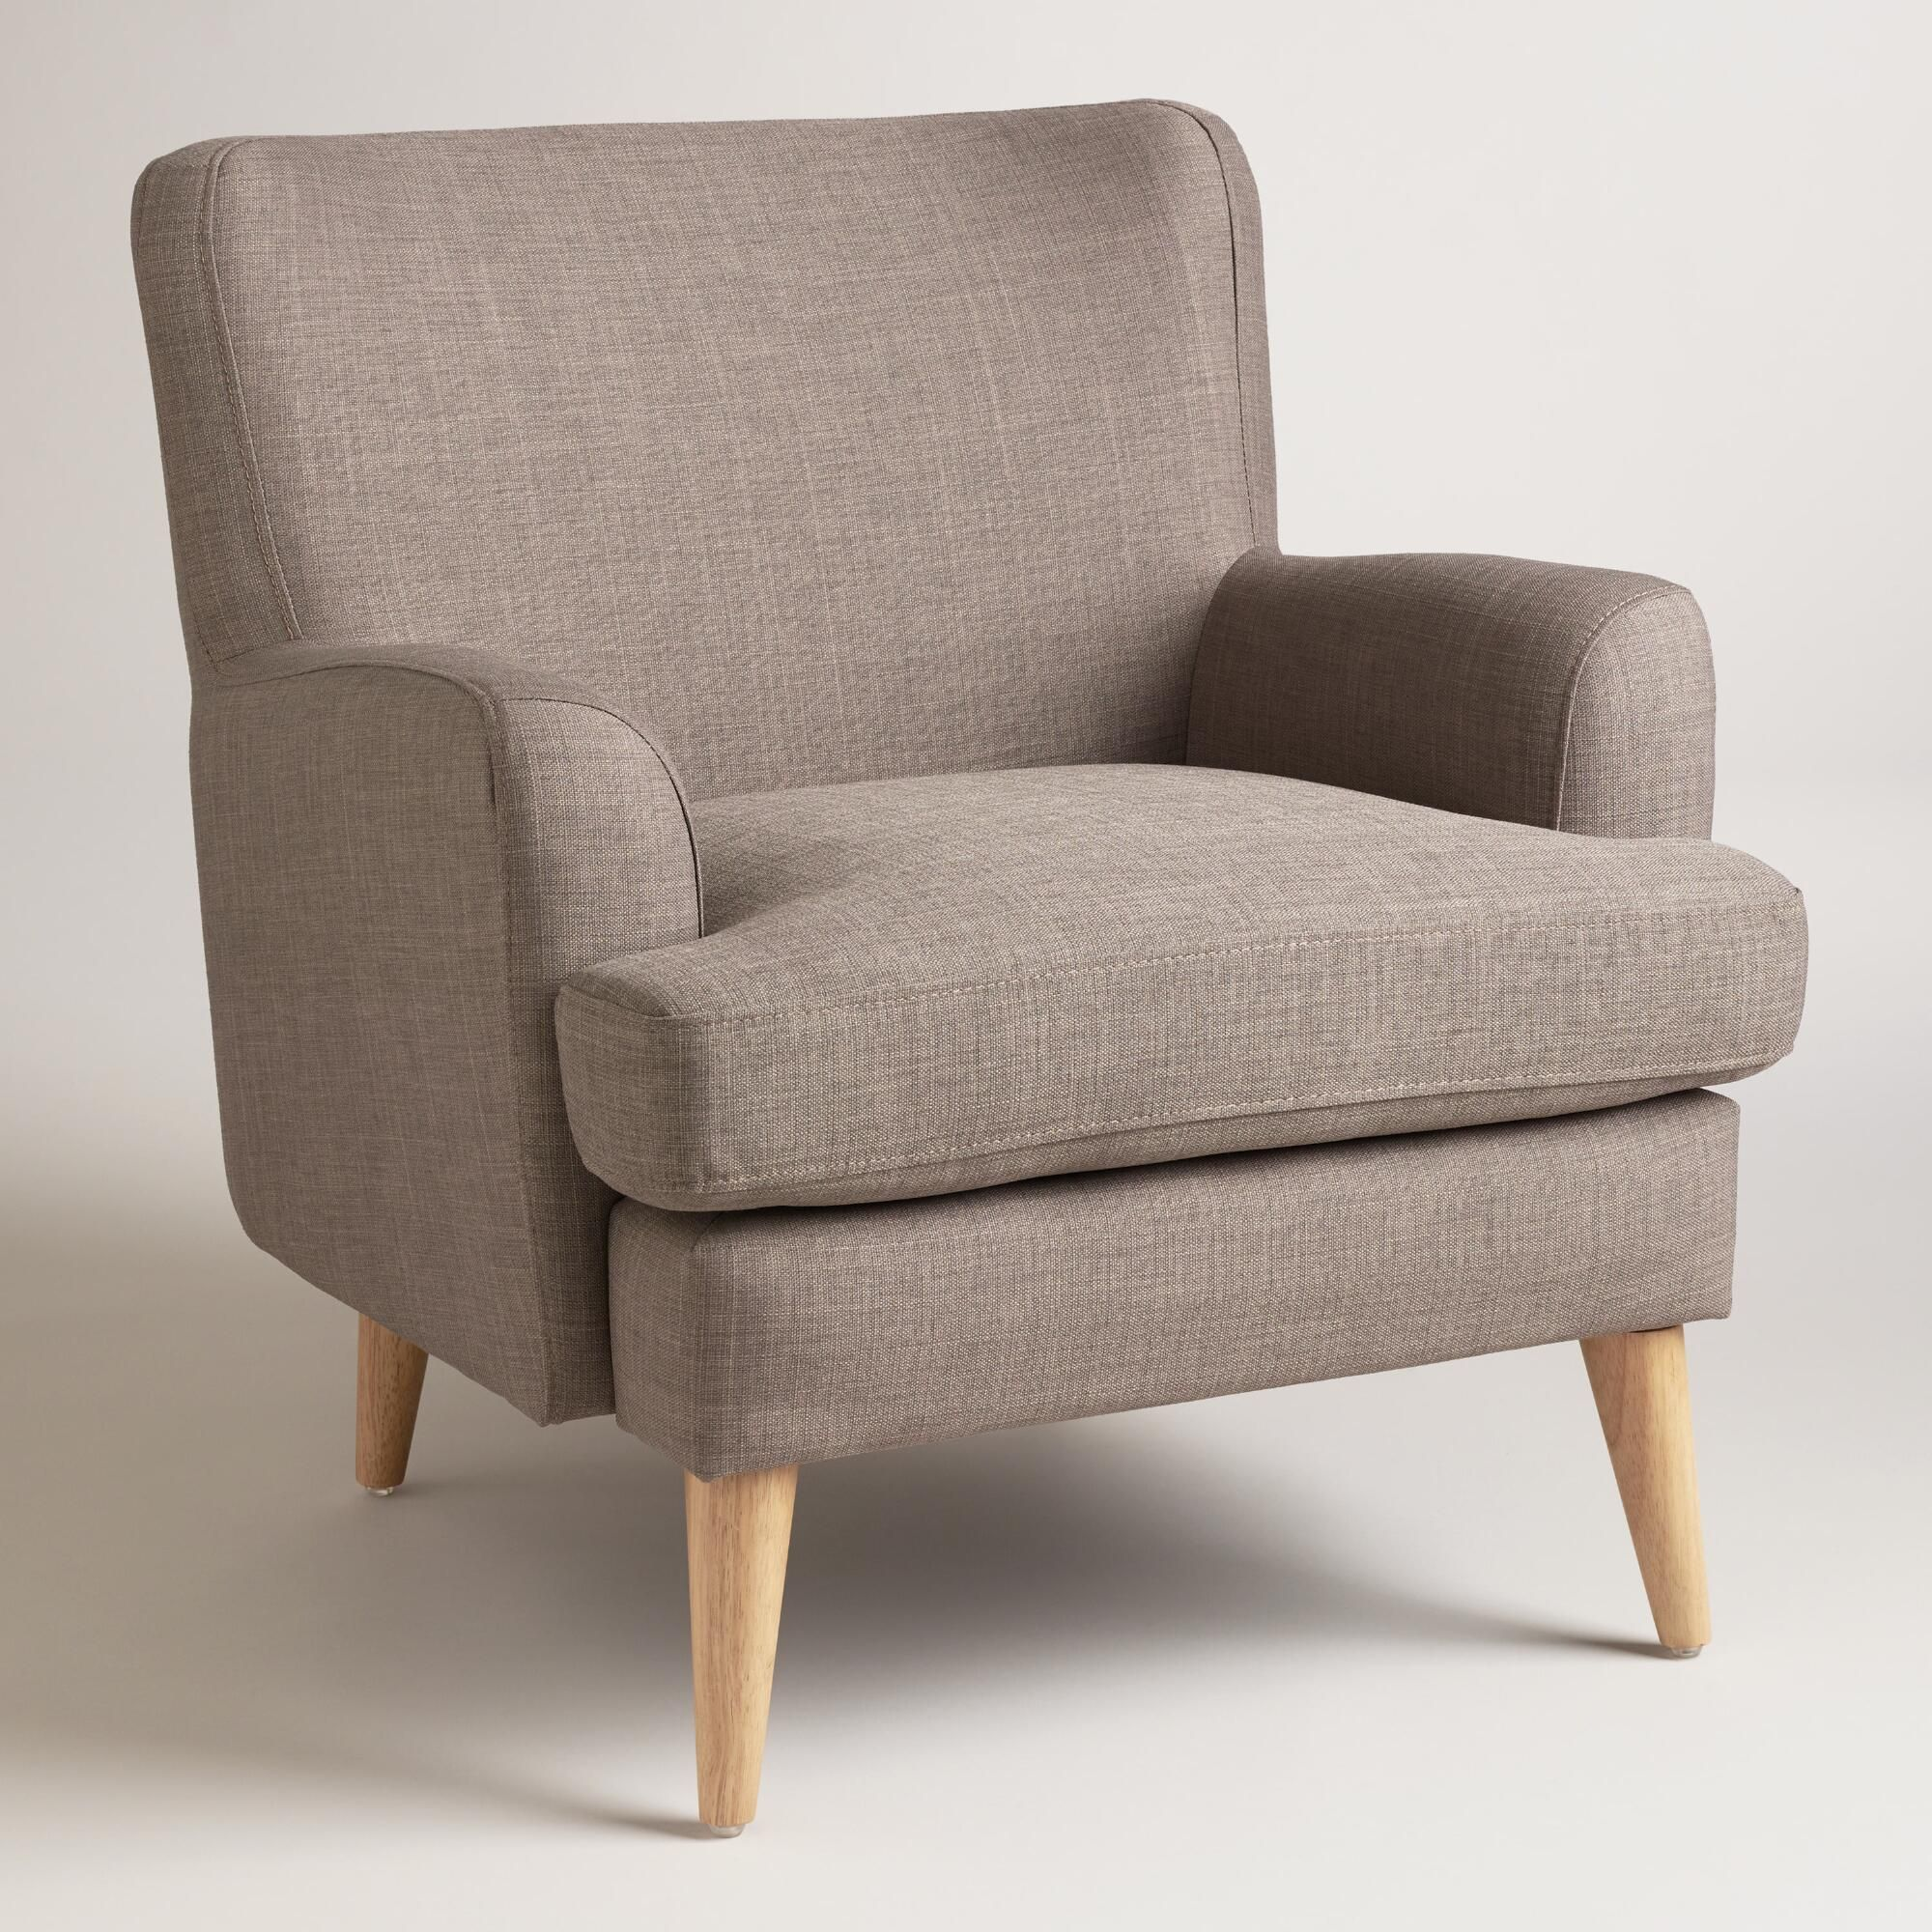 Best Reading Chair 9 Top And Best Reading Chairs In 2018 Styles At Life